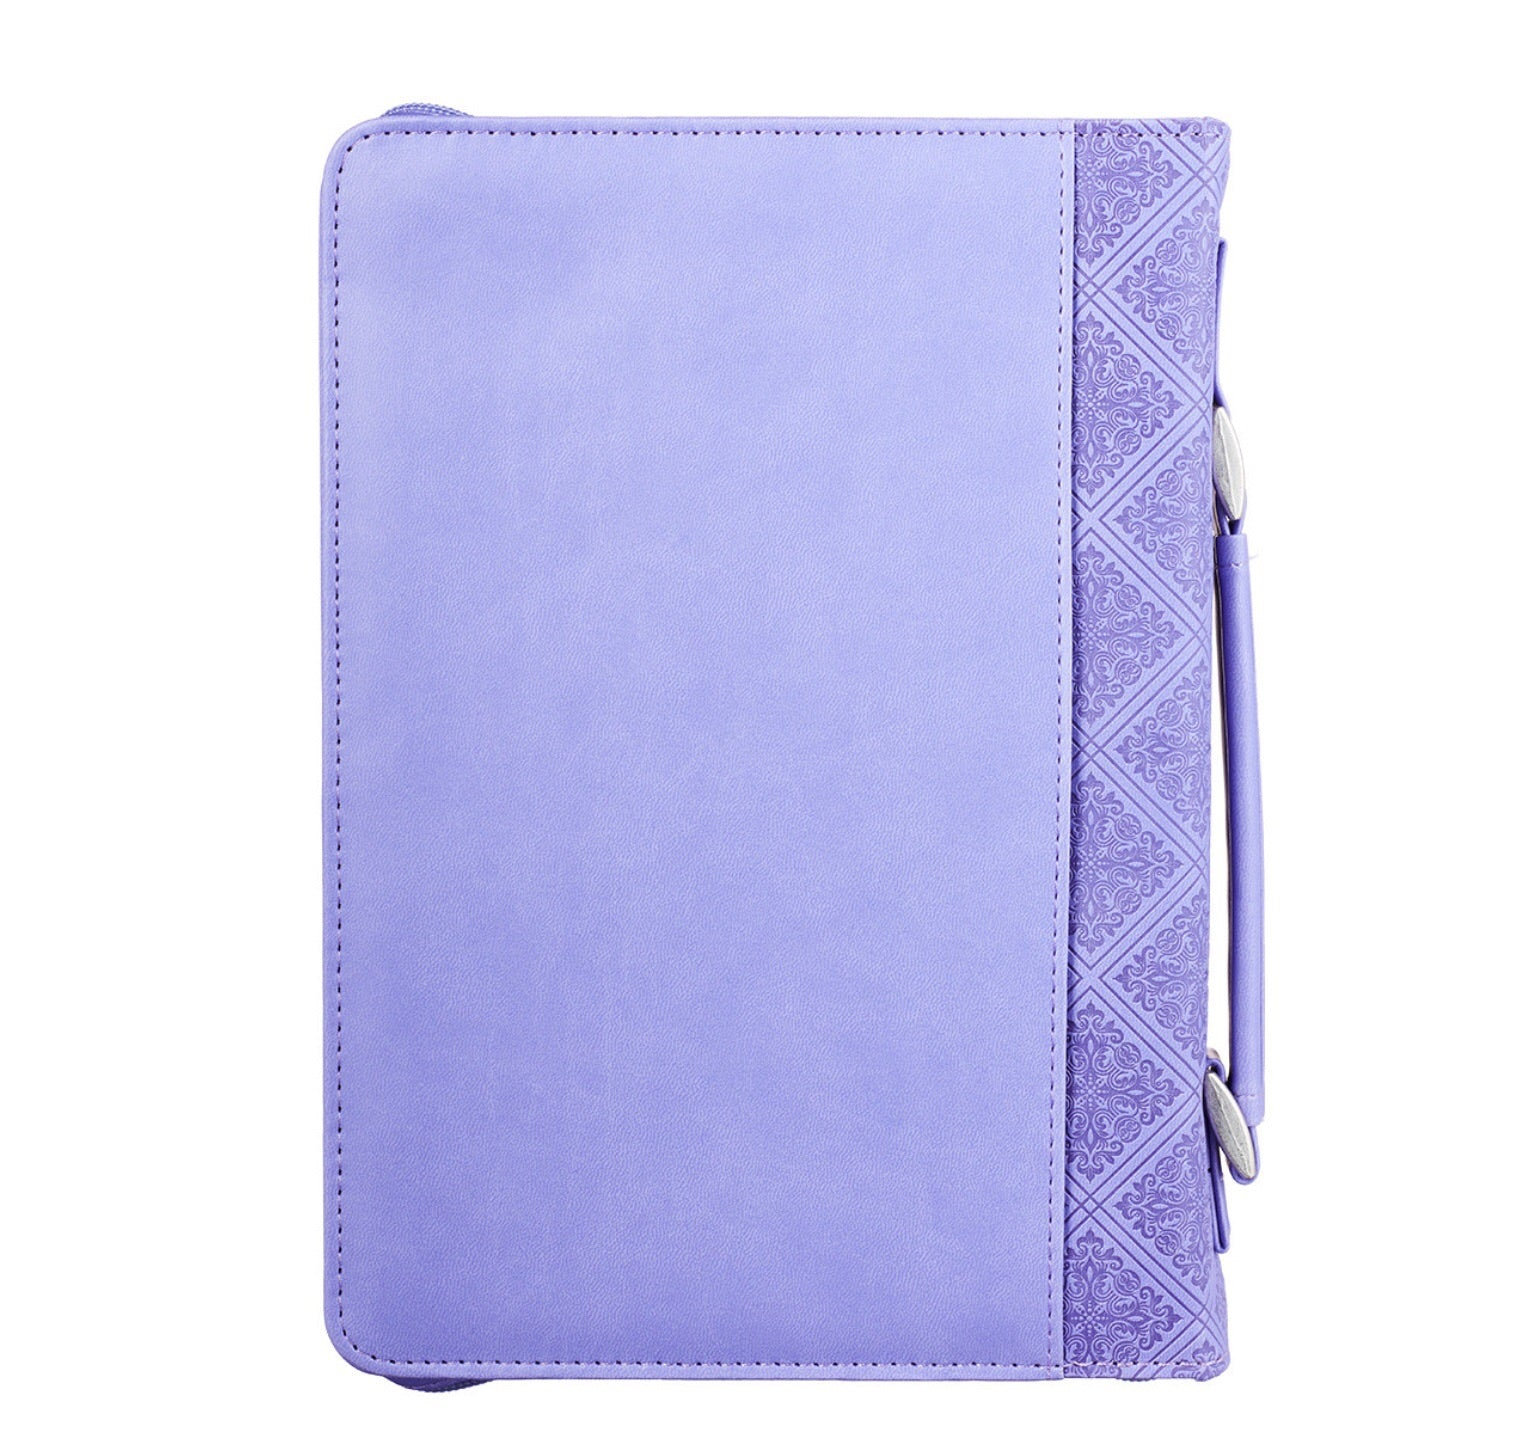 Medium Bible Case